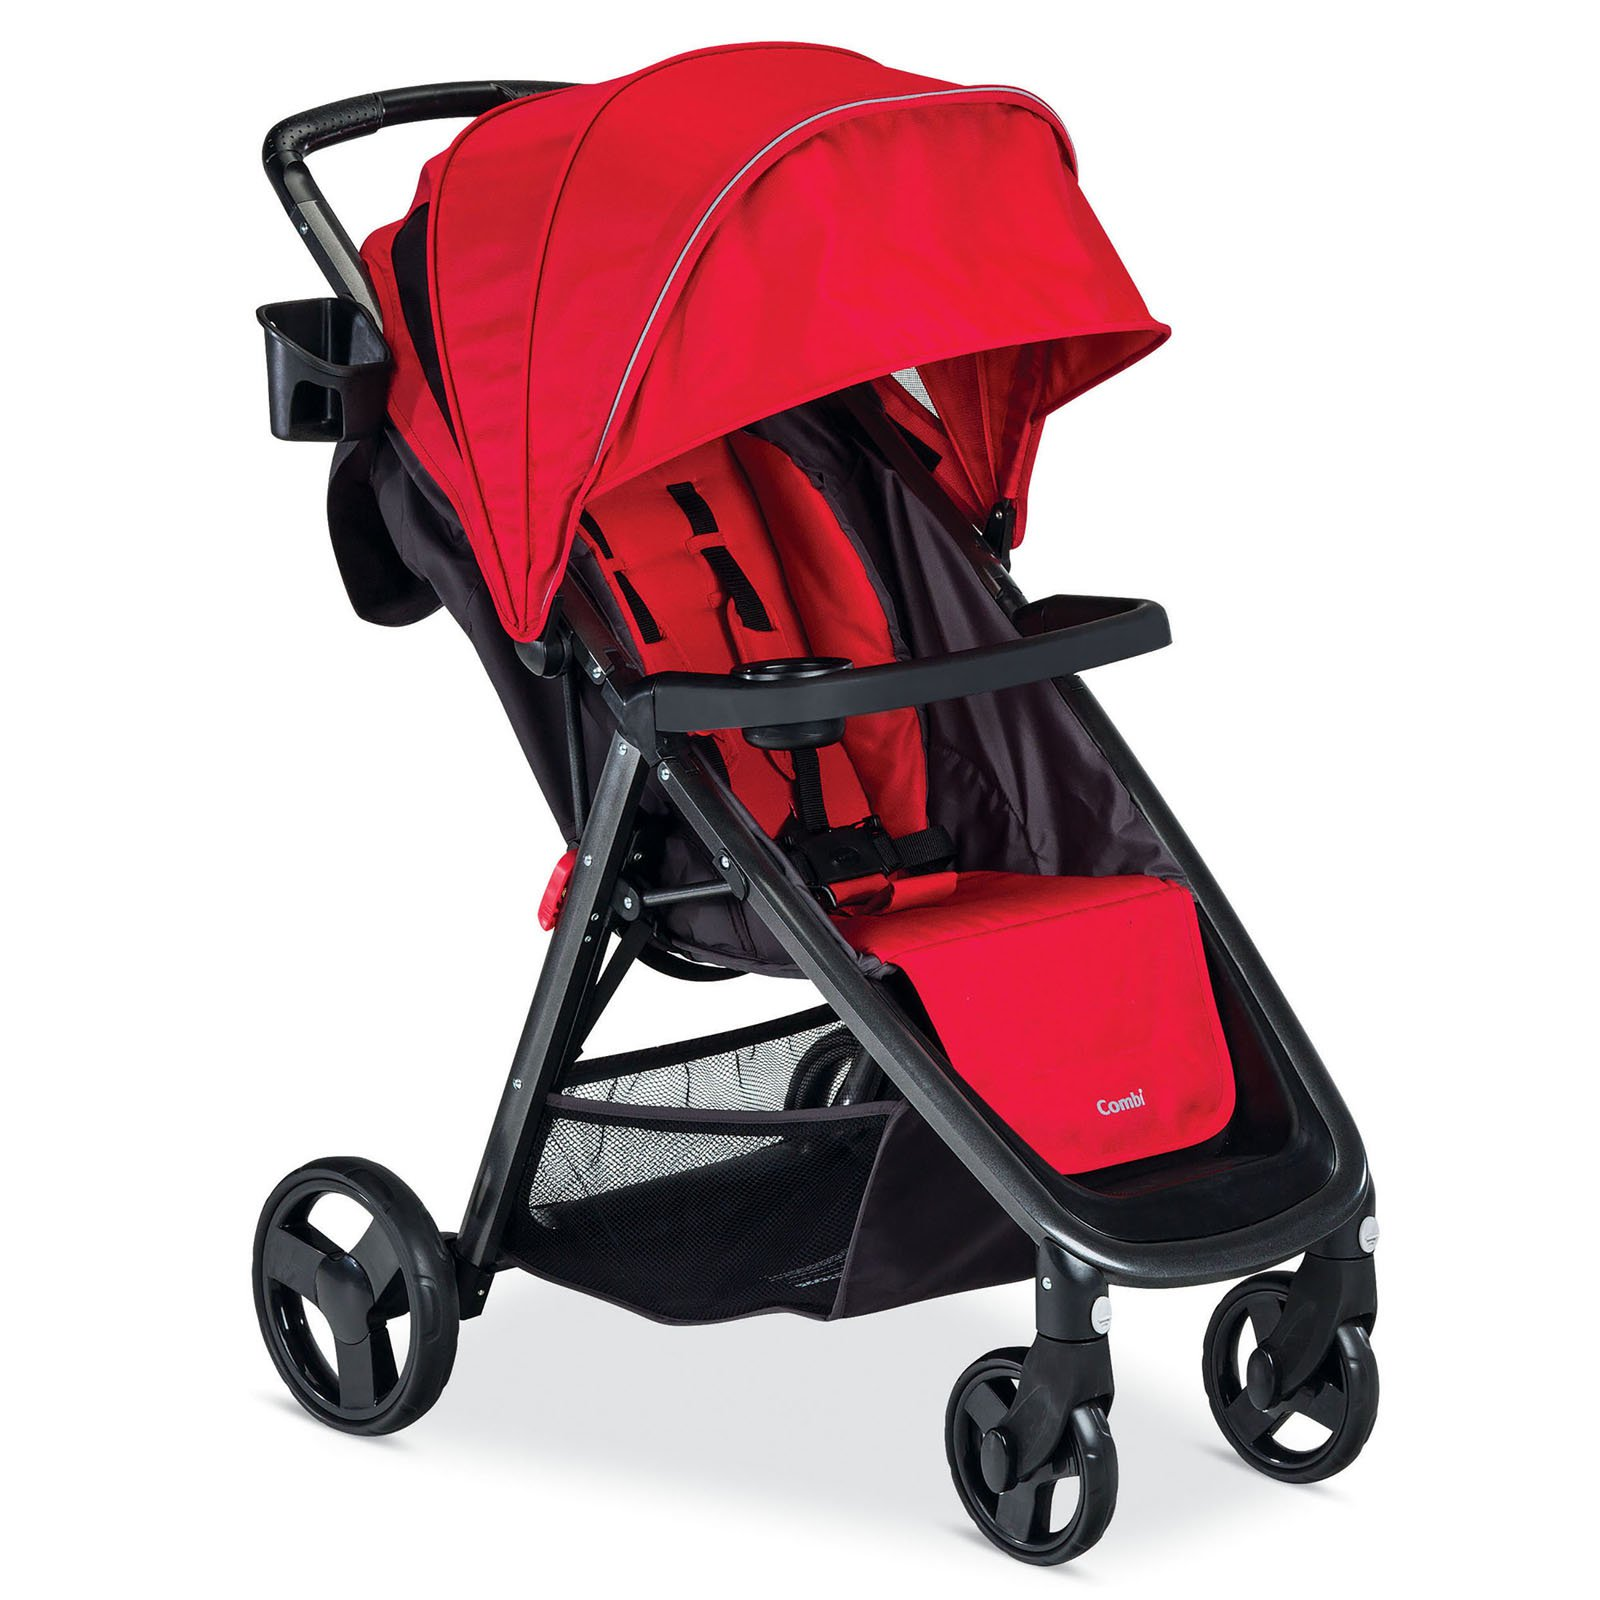 Combi Fold N Go Stroller, Choose your Color - Walmart.com ...